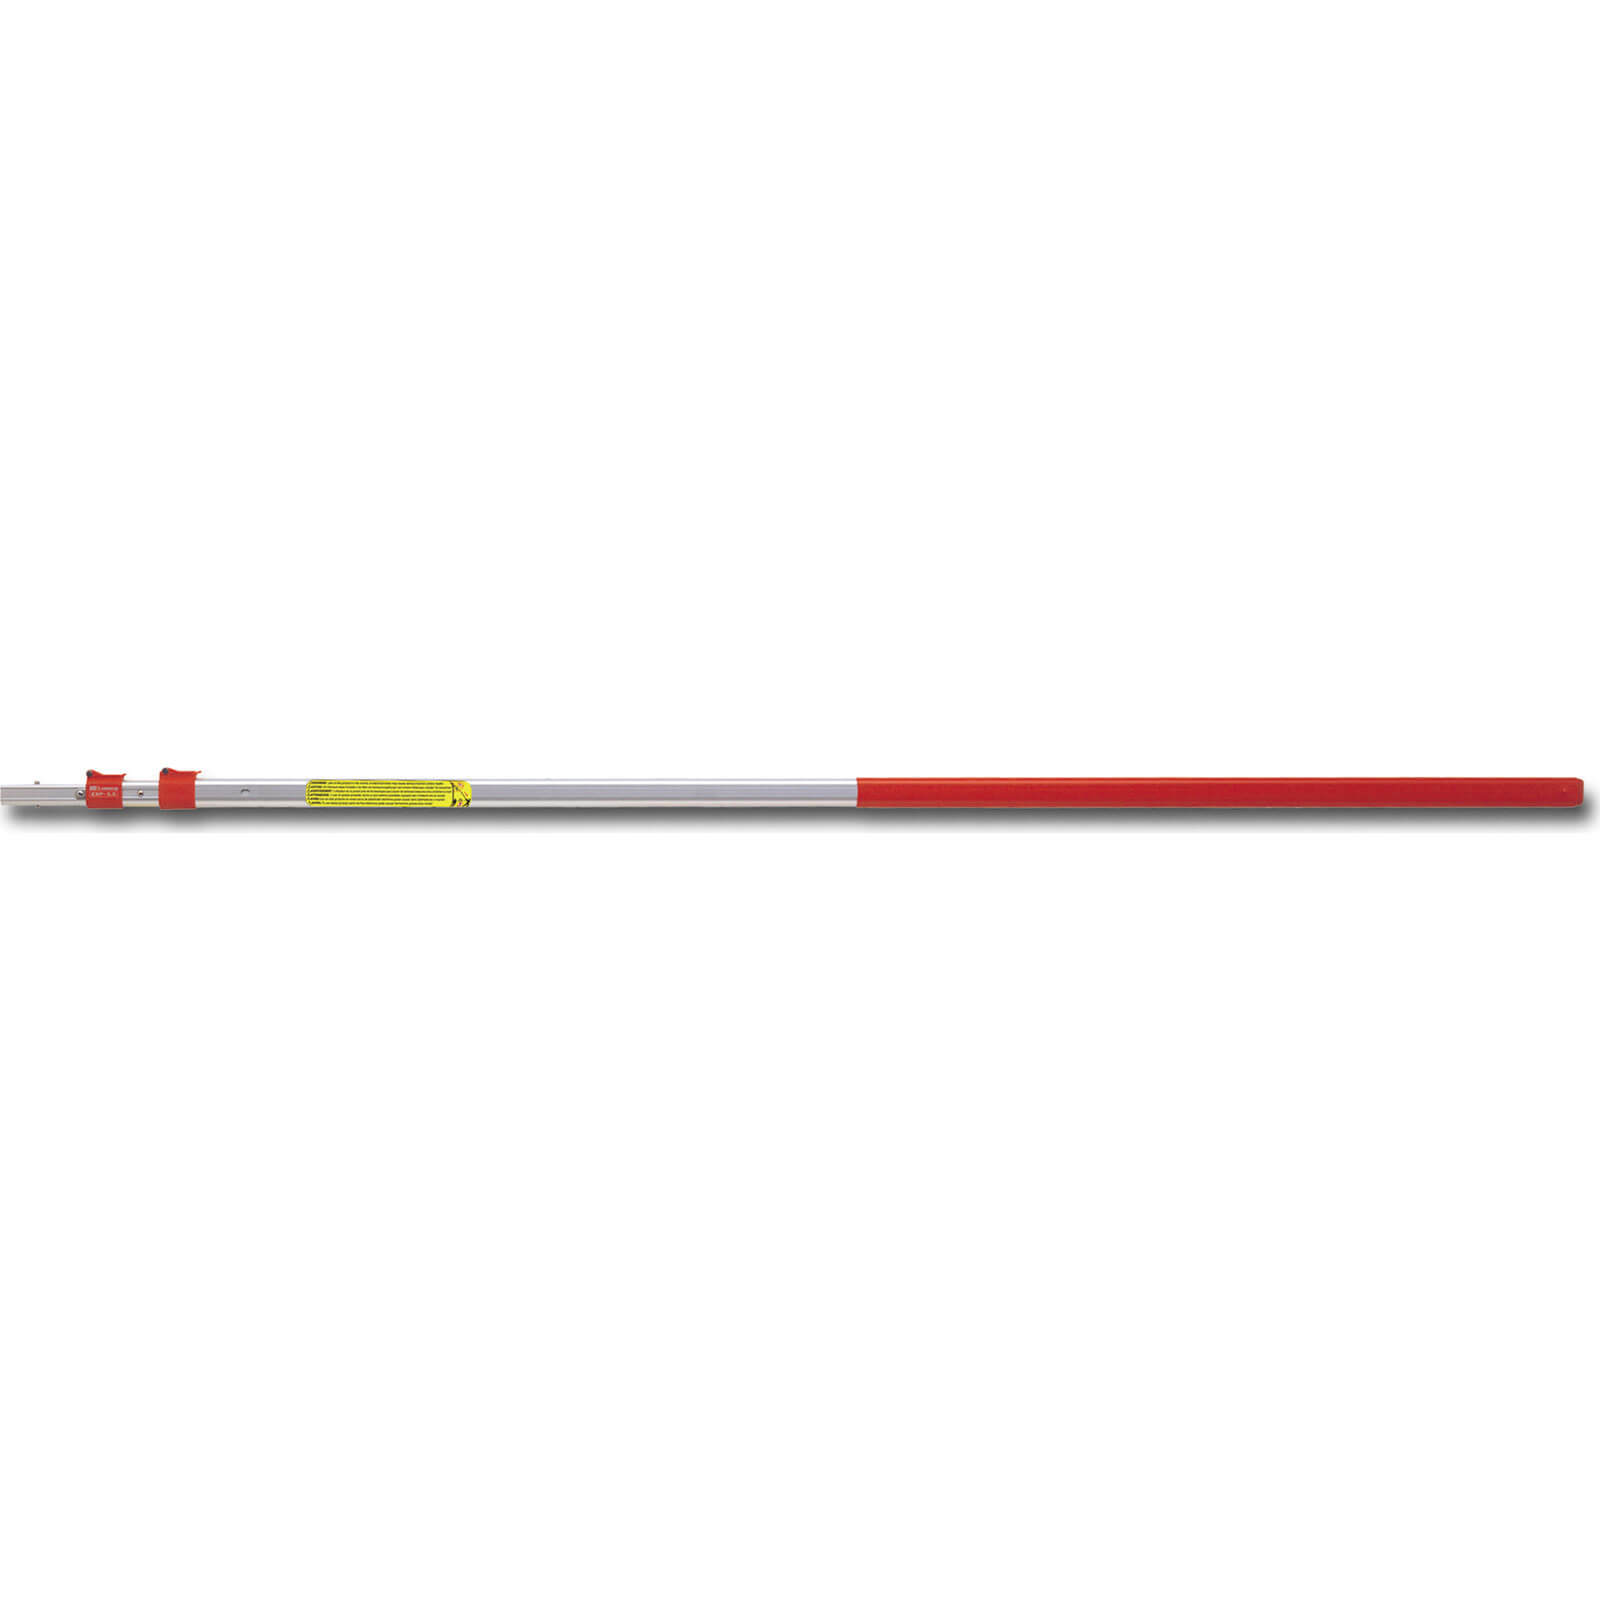 ARS EXP Telescopic Pole for Pole Saw Heads 5.6m